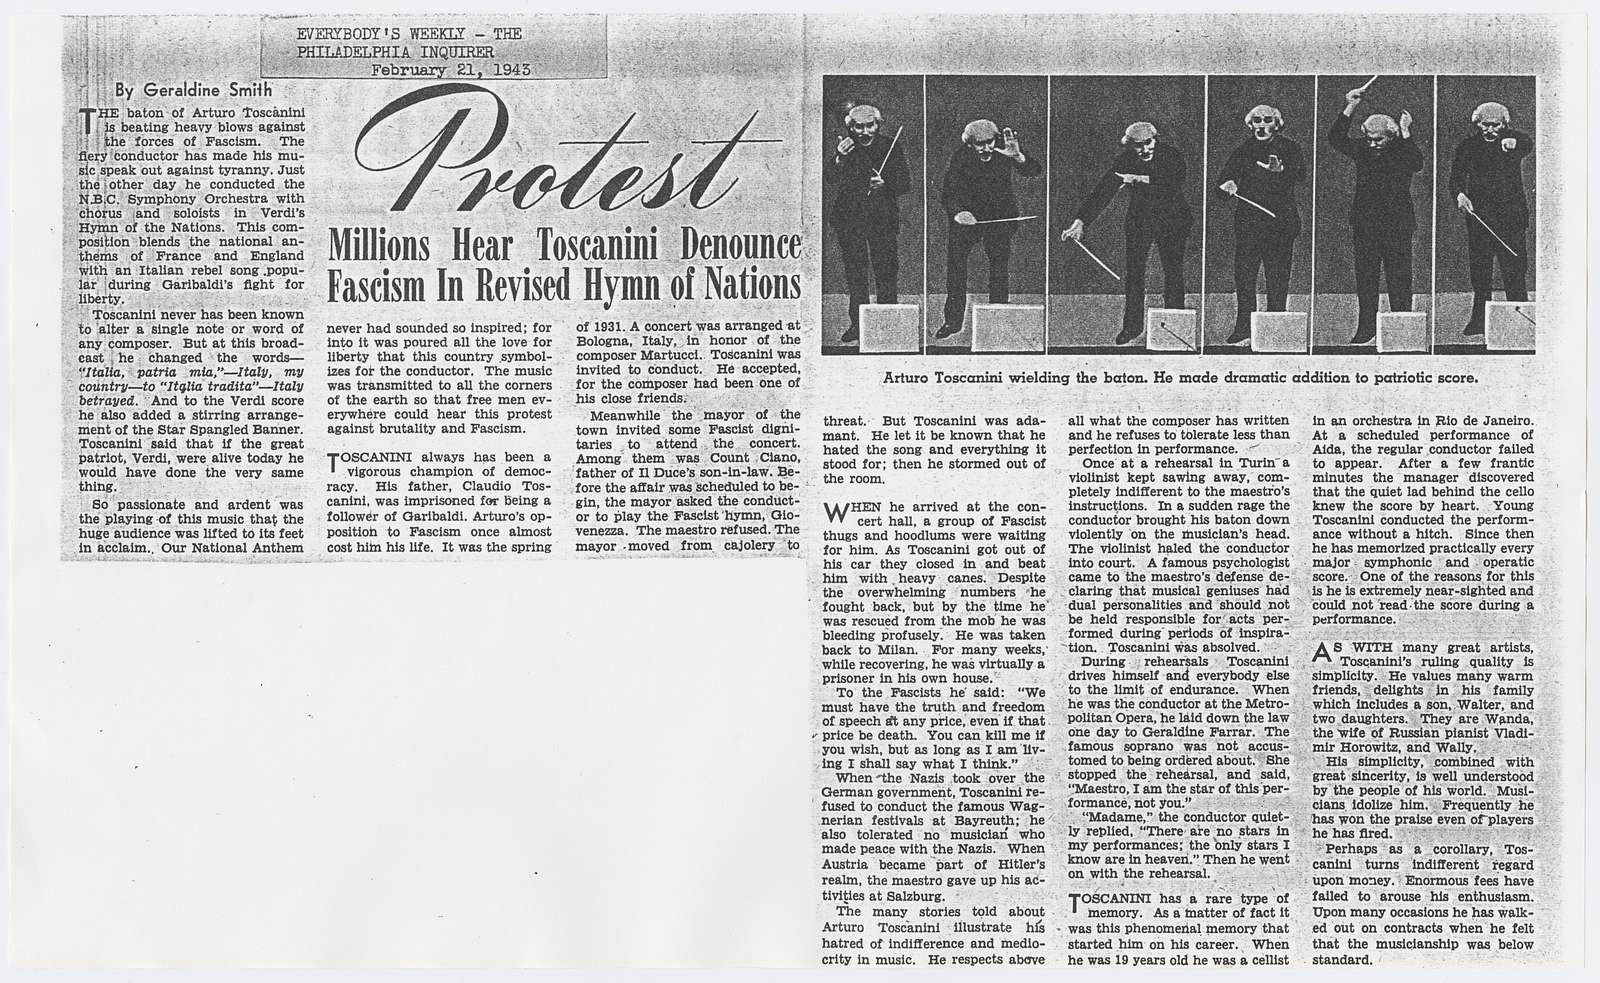 Newspaper review of Arturo Toscanini's Hymn of Nations